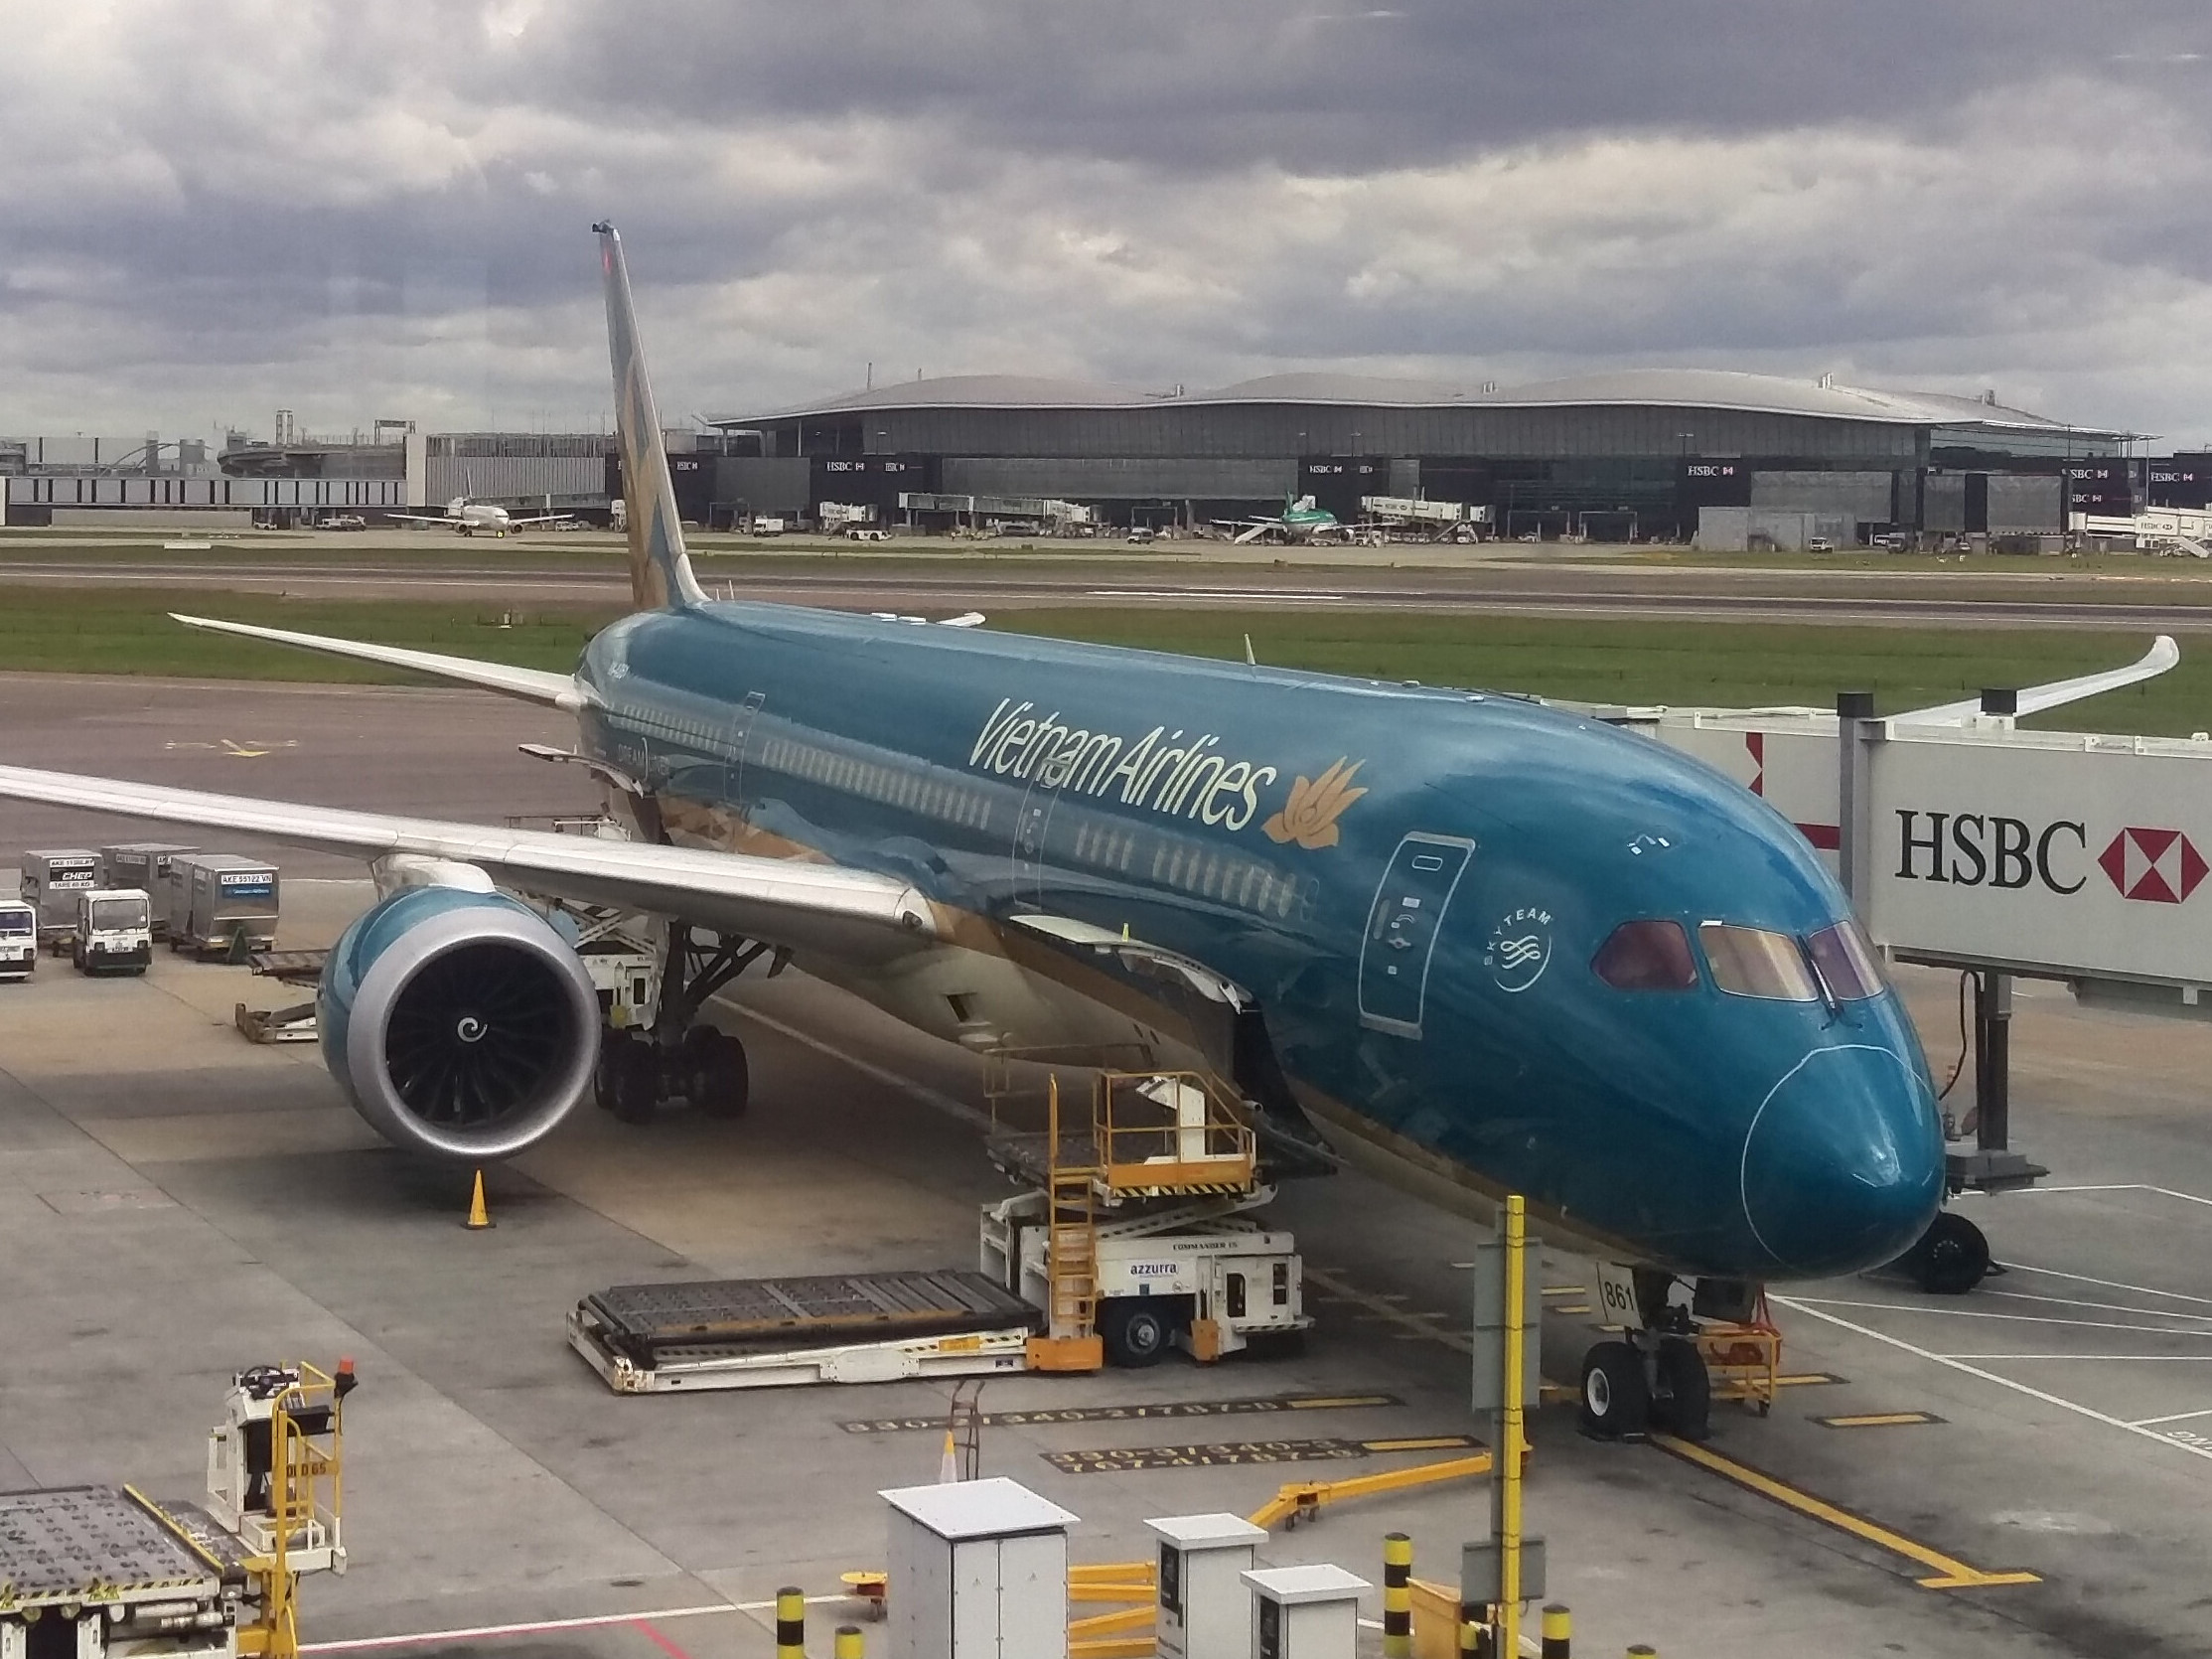 My Vietnamese Airlines Boeing 787-9 waiting at the gate at Heathrow's Terminal 4 to take me to Ho Chi Minh City.